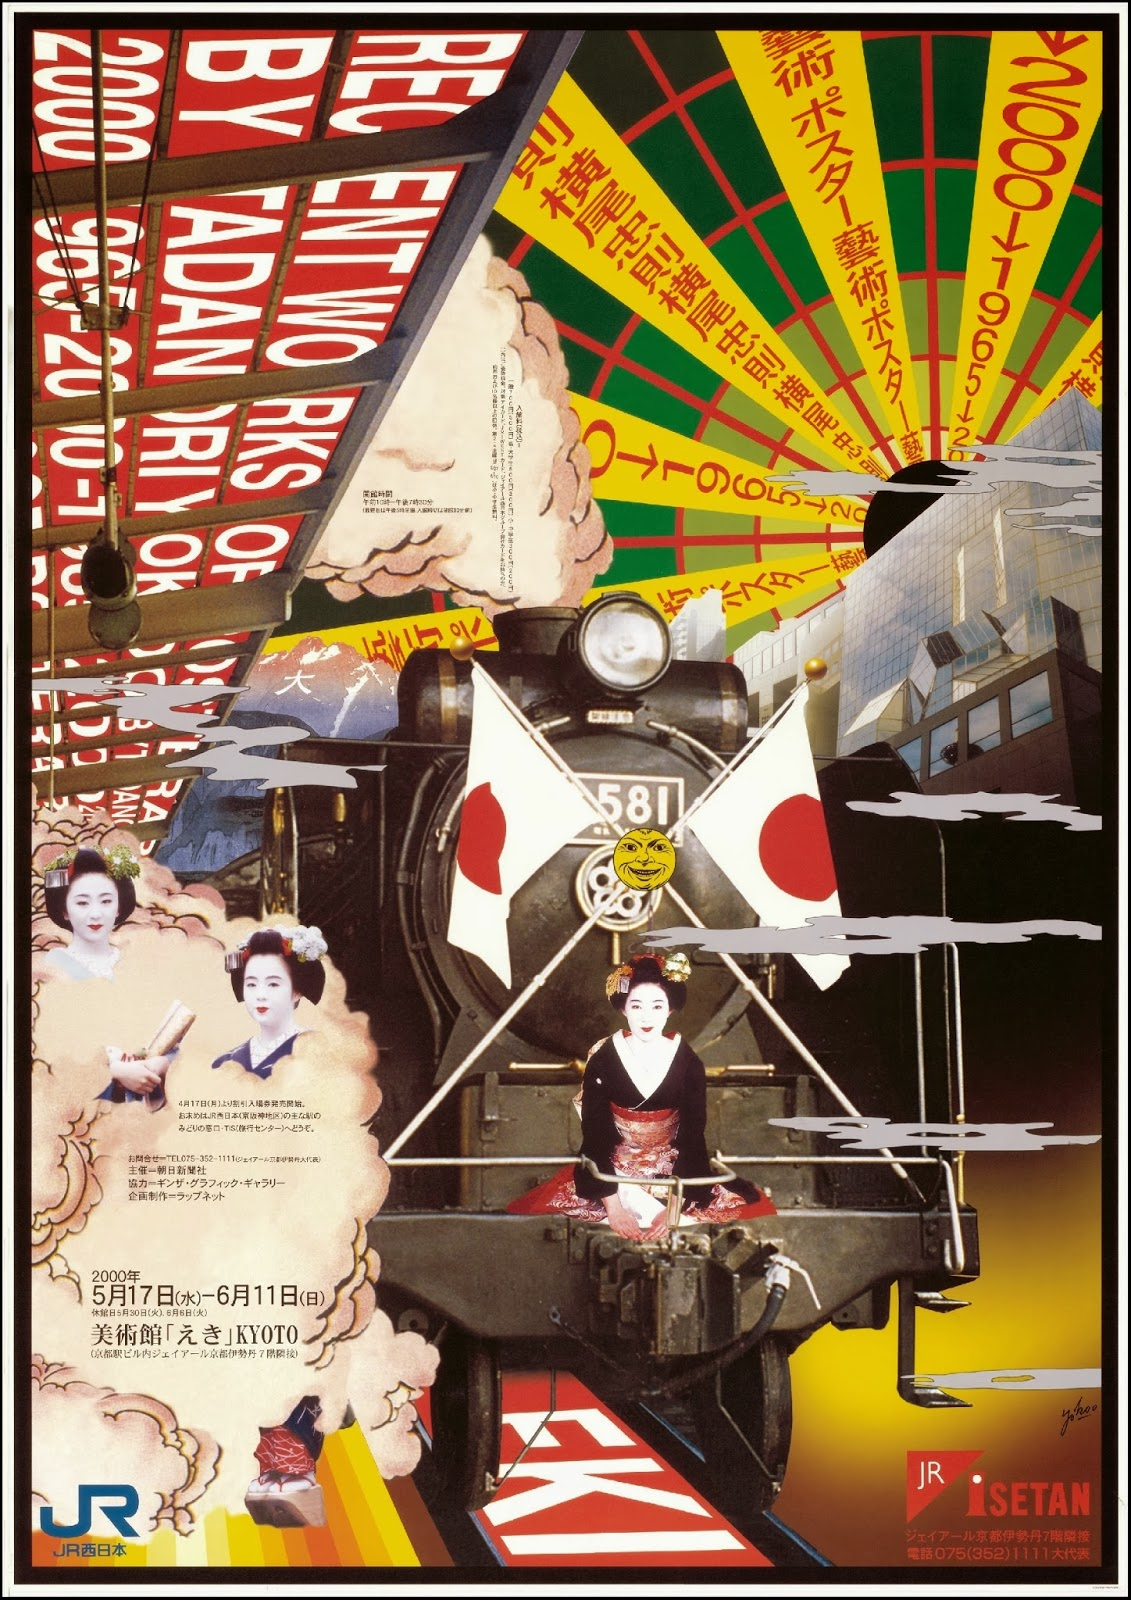 pastiche commemorative Japanese poster with graphical, photographic and cliche geisha portrait pictures